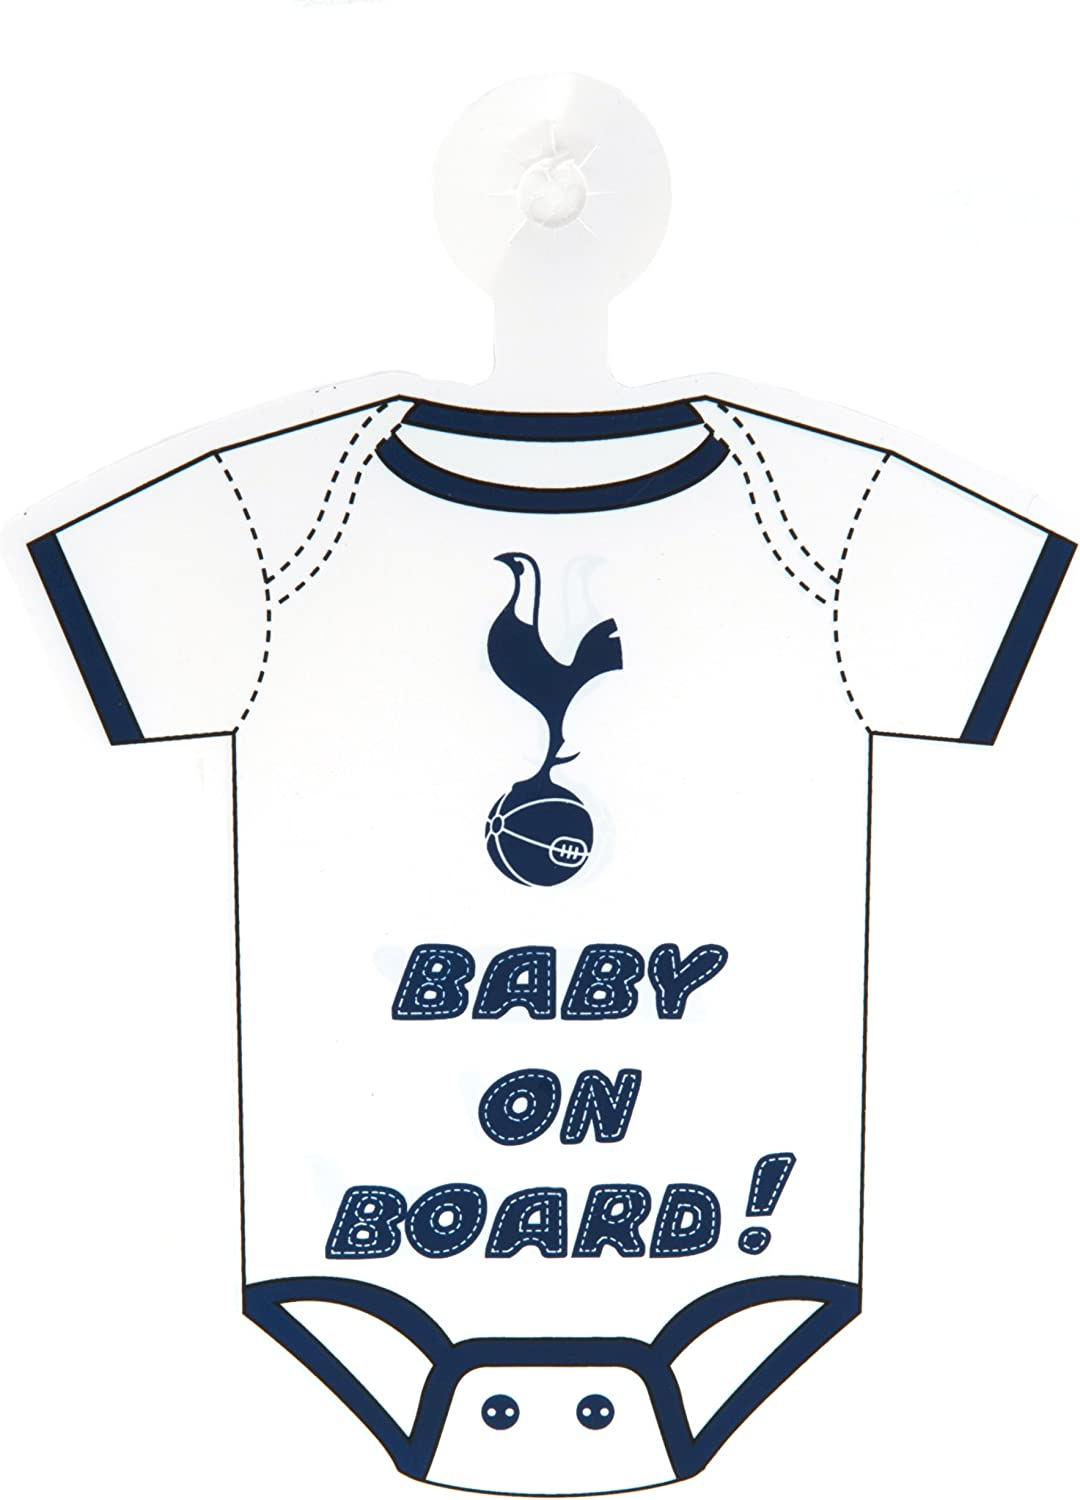 Tottenham Hotspur F C Baby On Board Amazon Co Uk Sports Outdoors